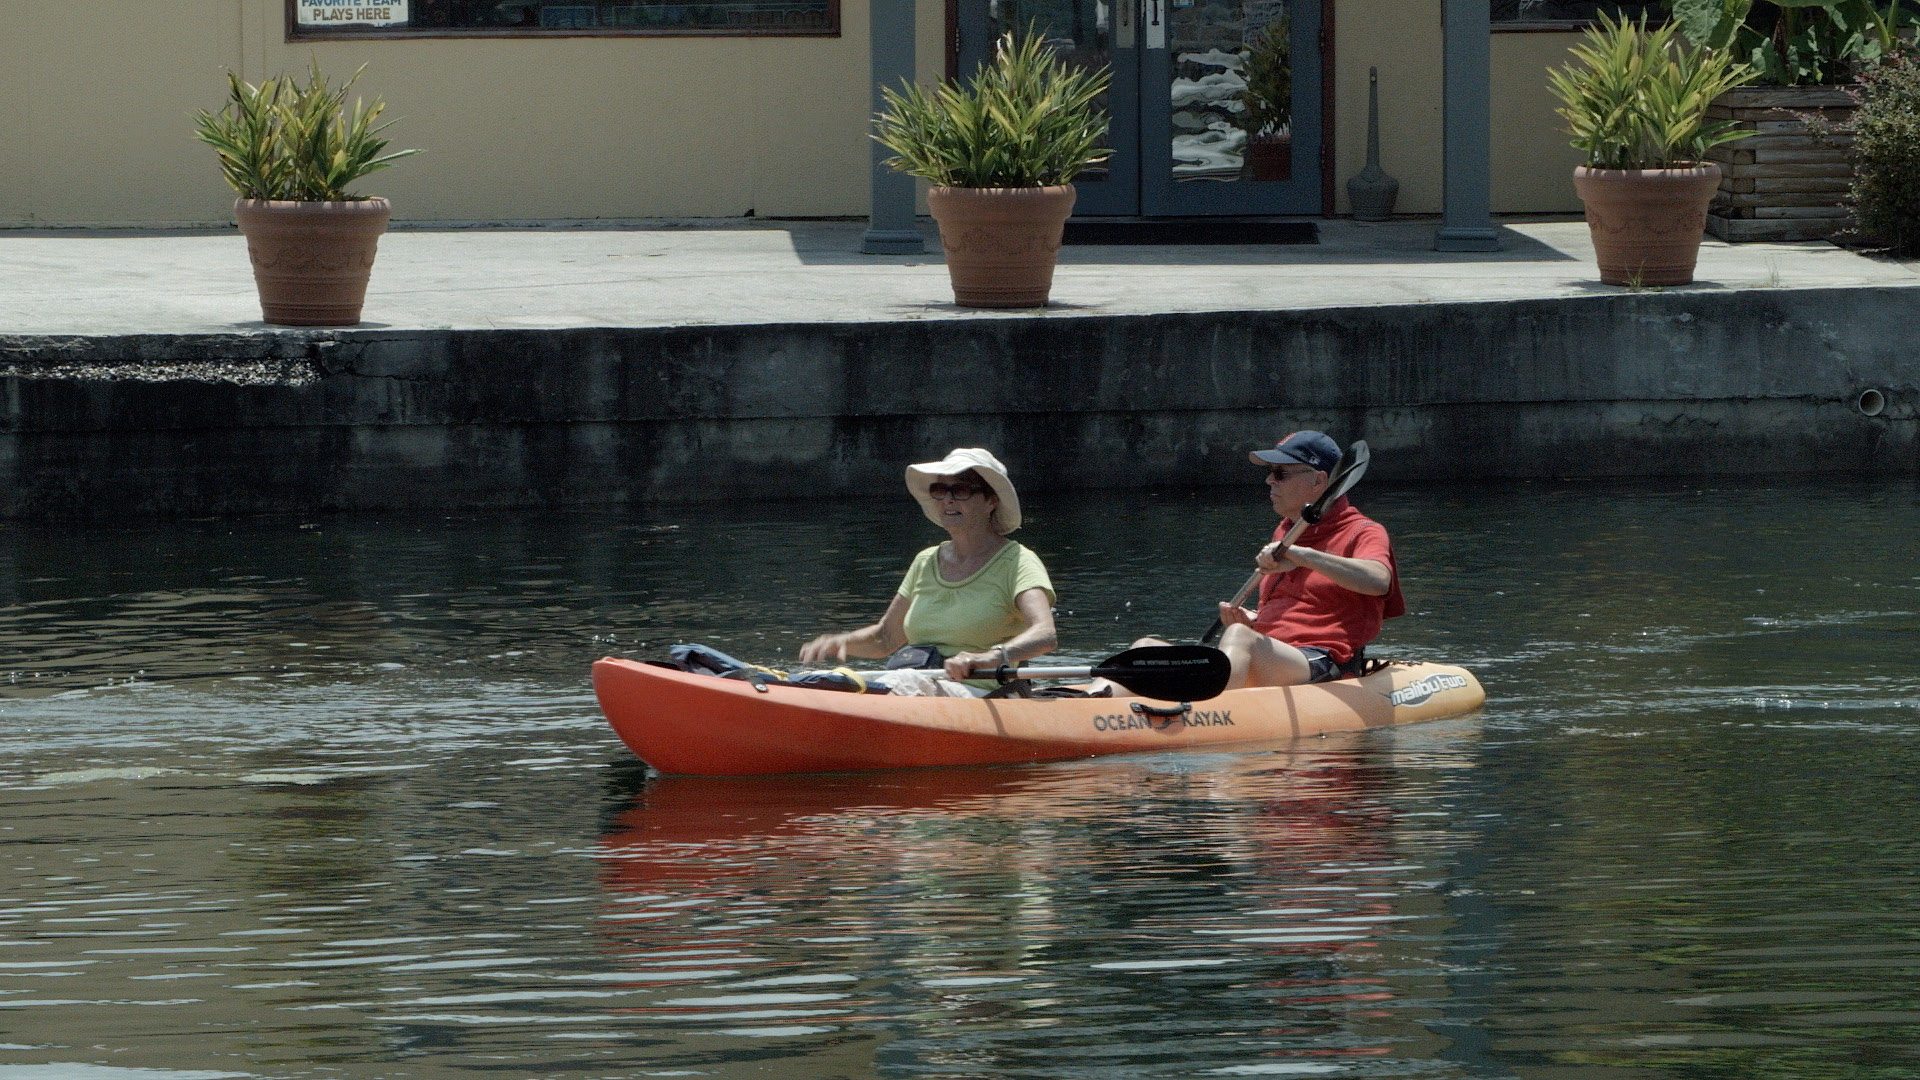 Tandem kayaking for couples